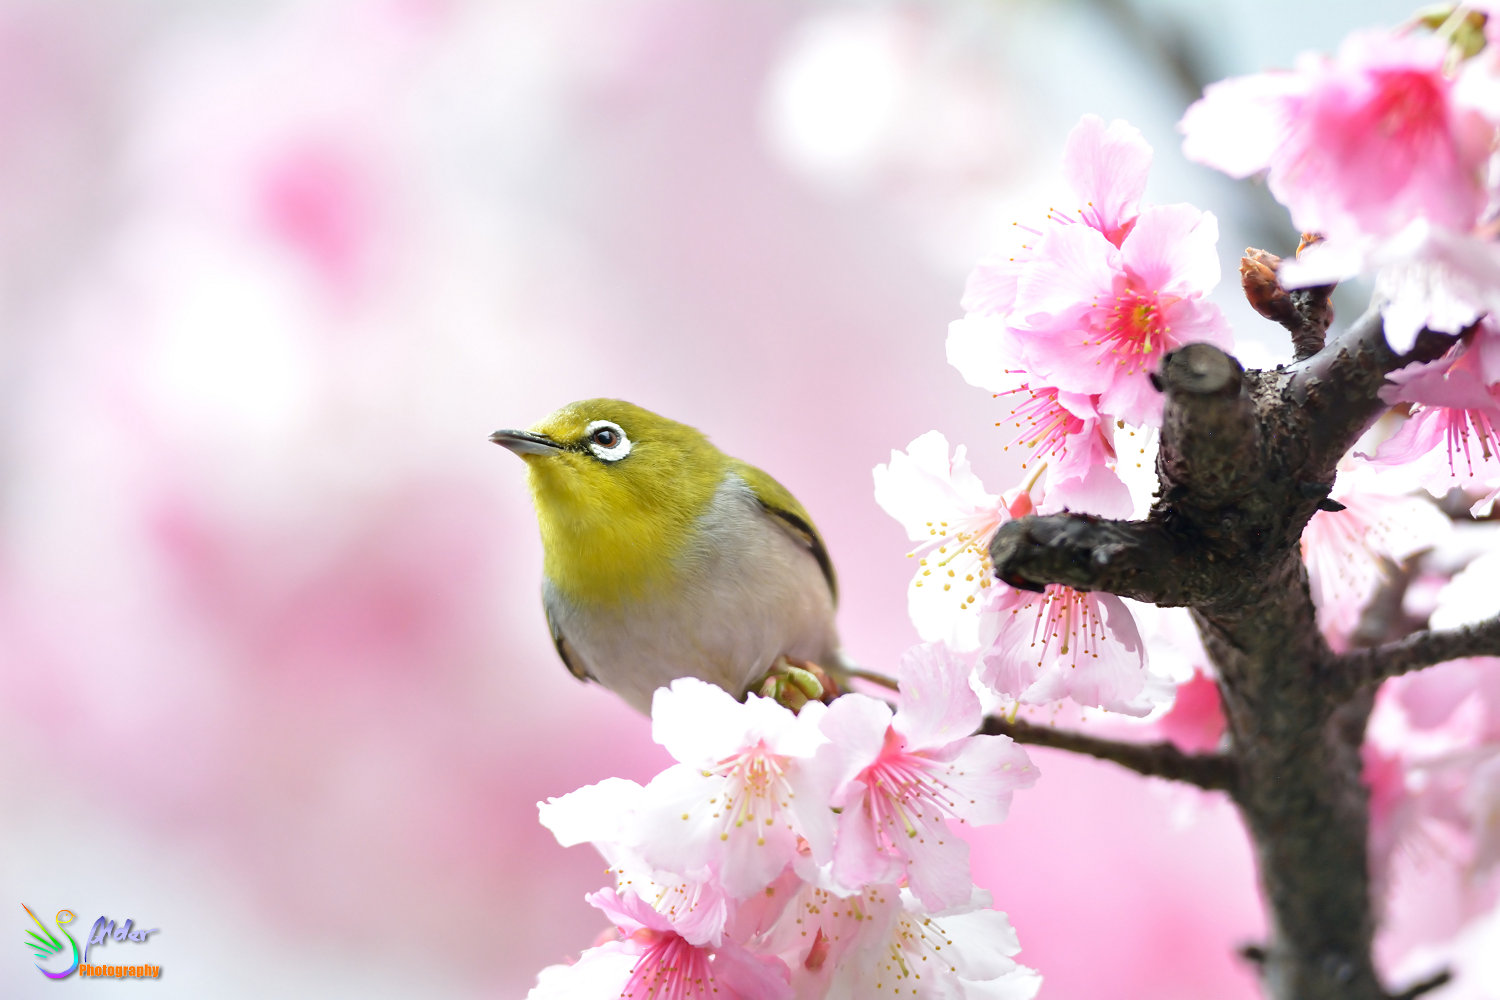 Sakura_White-eye_7372